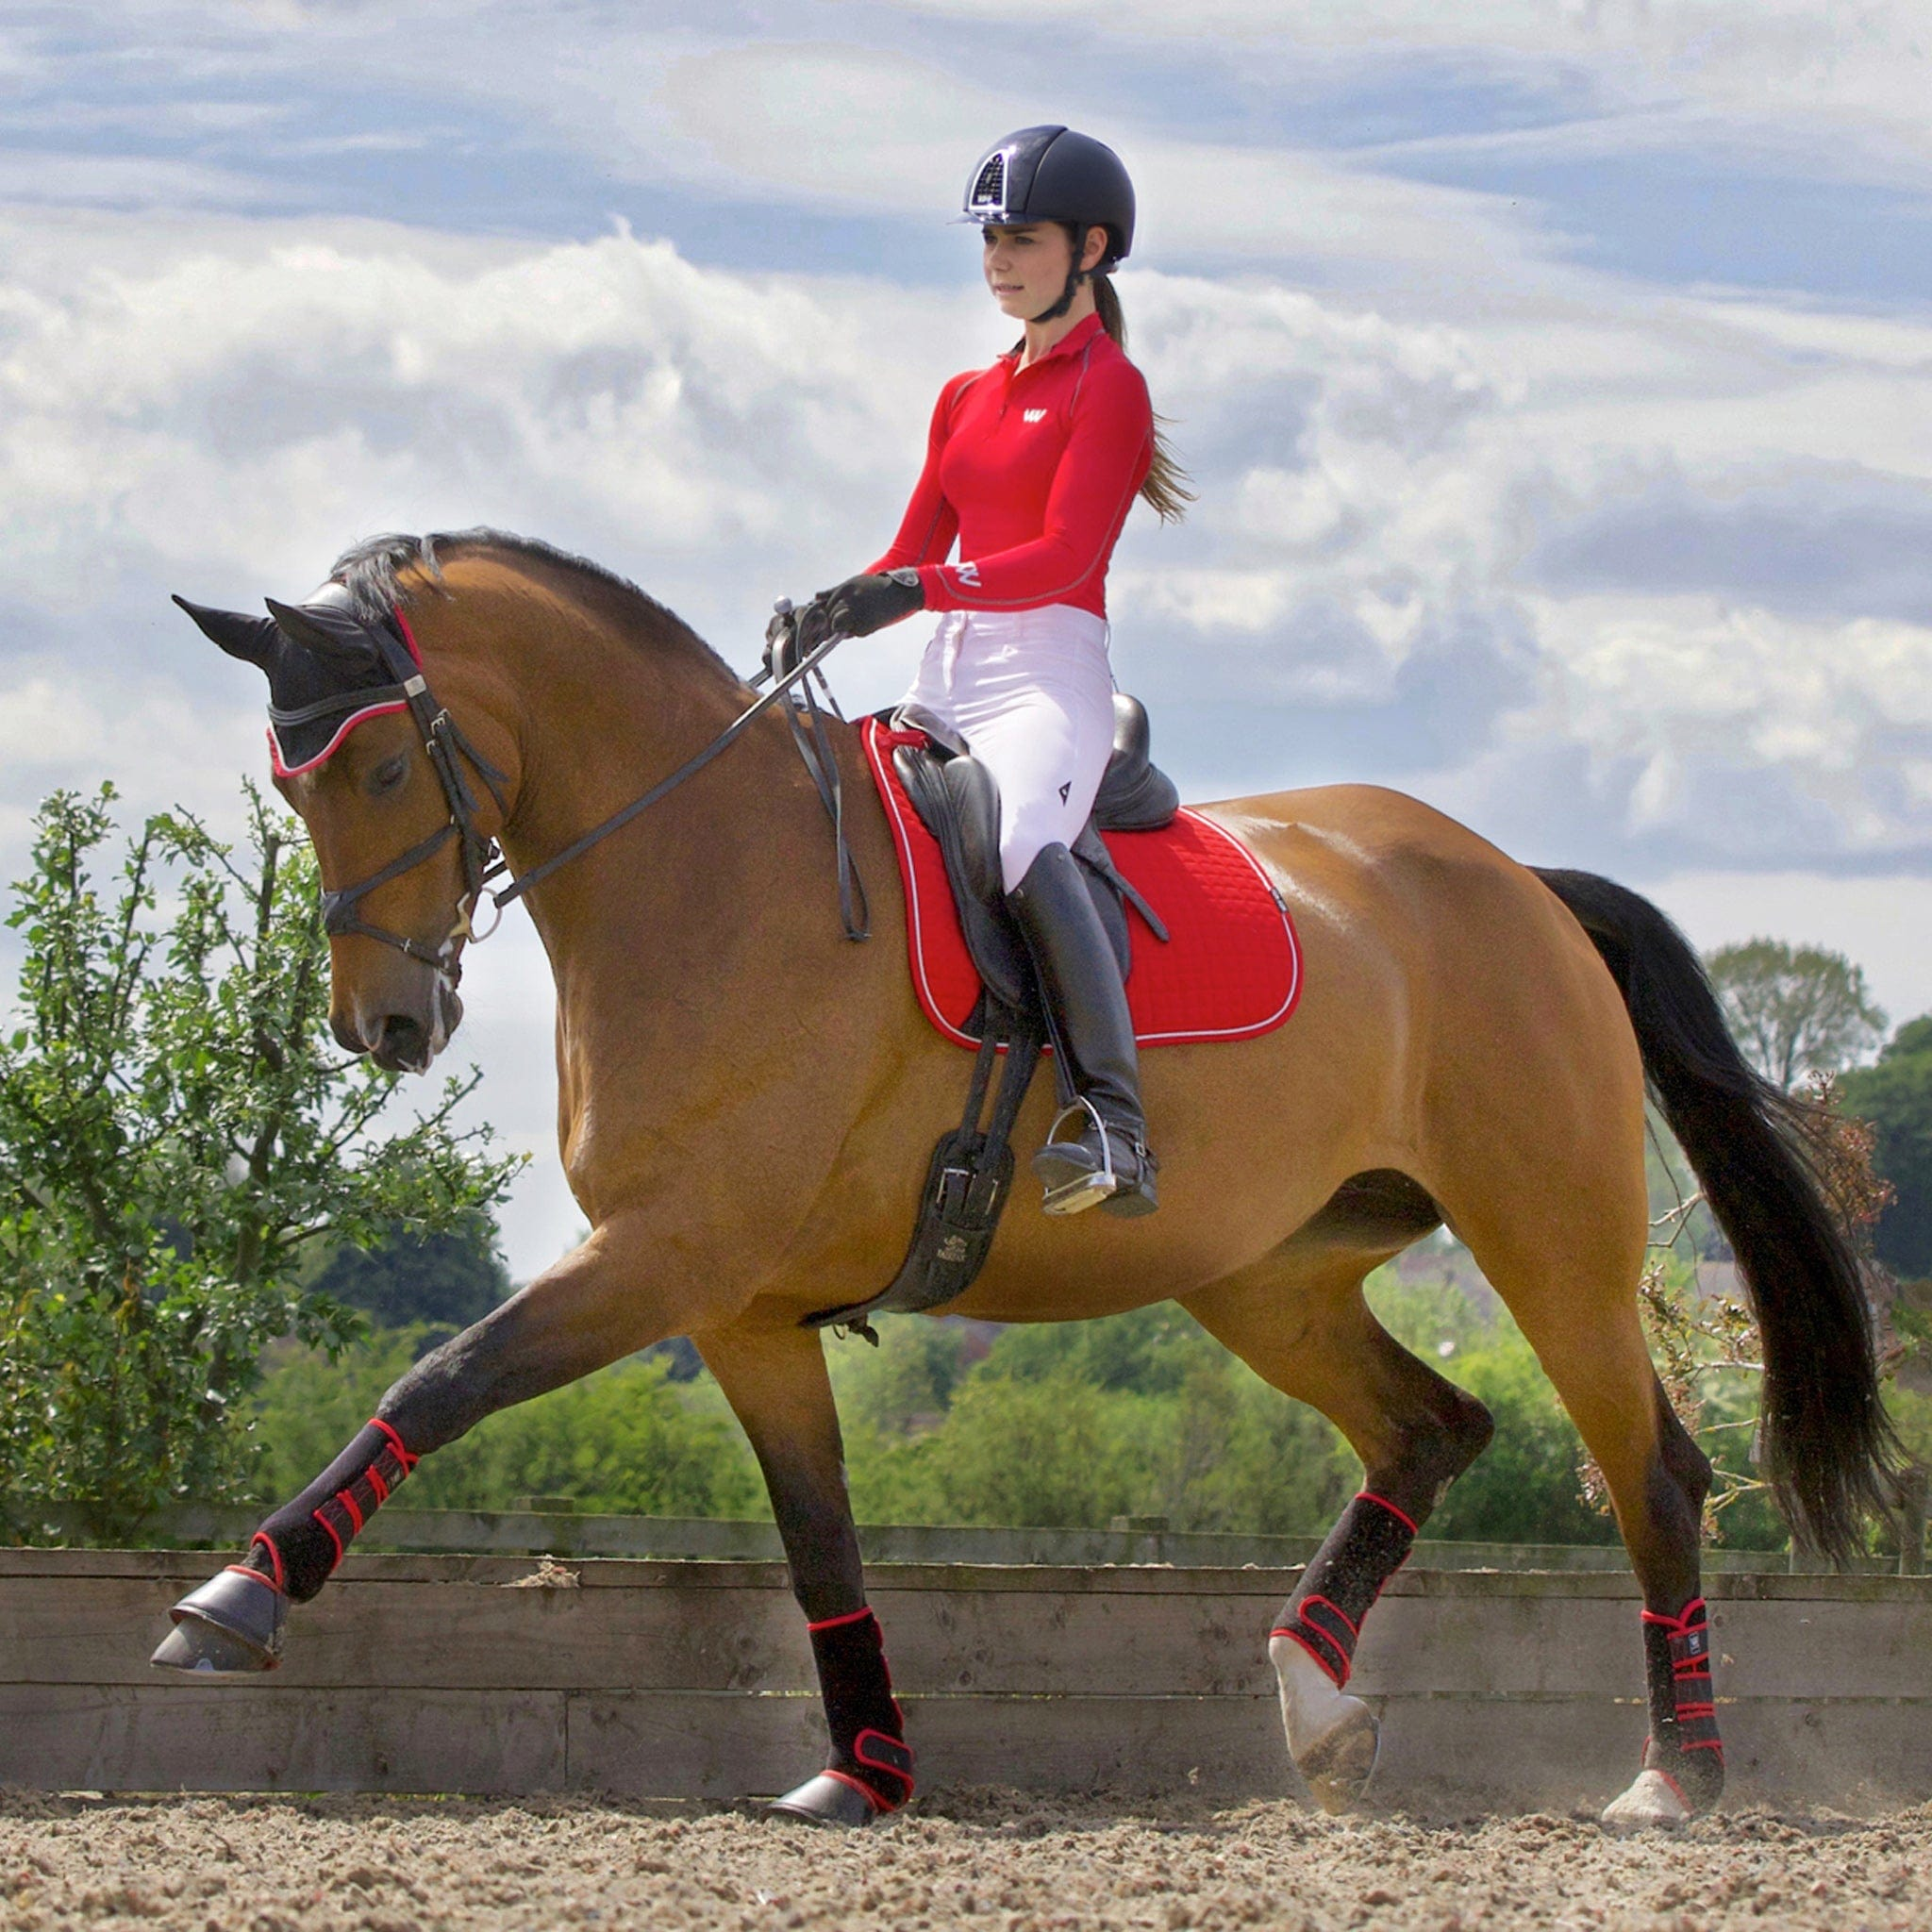 Woof Wear Performance Riding Shirt Royal Red RYRE Rider On Horse Trotting